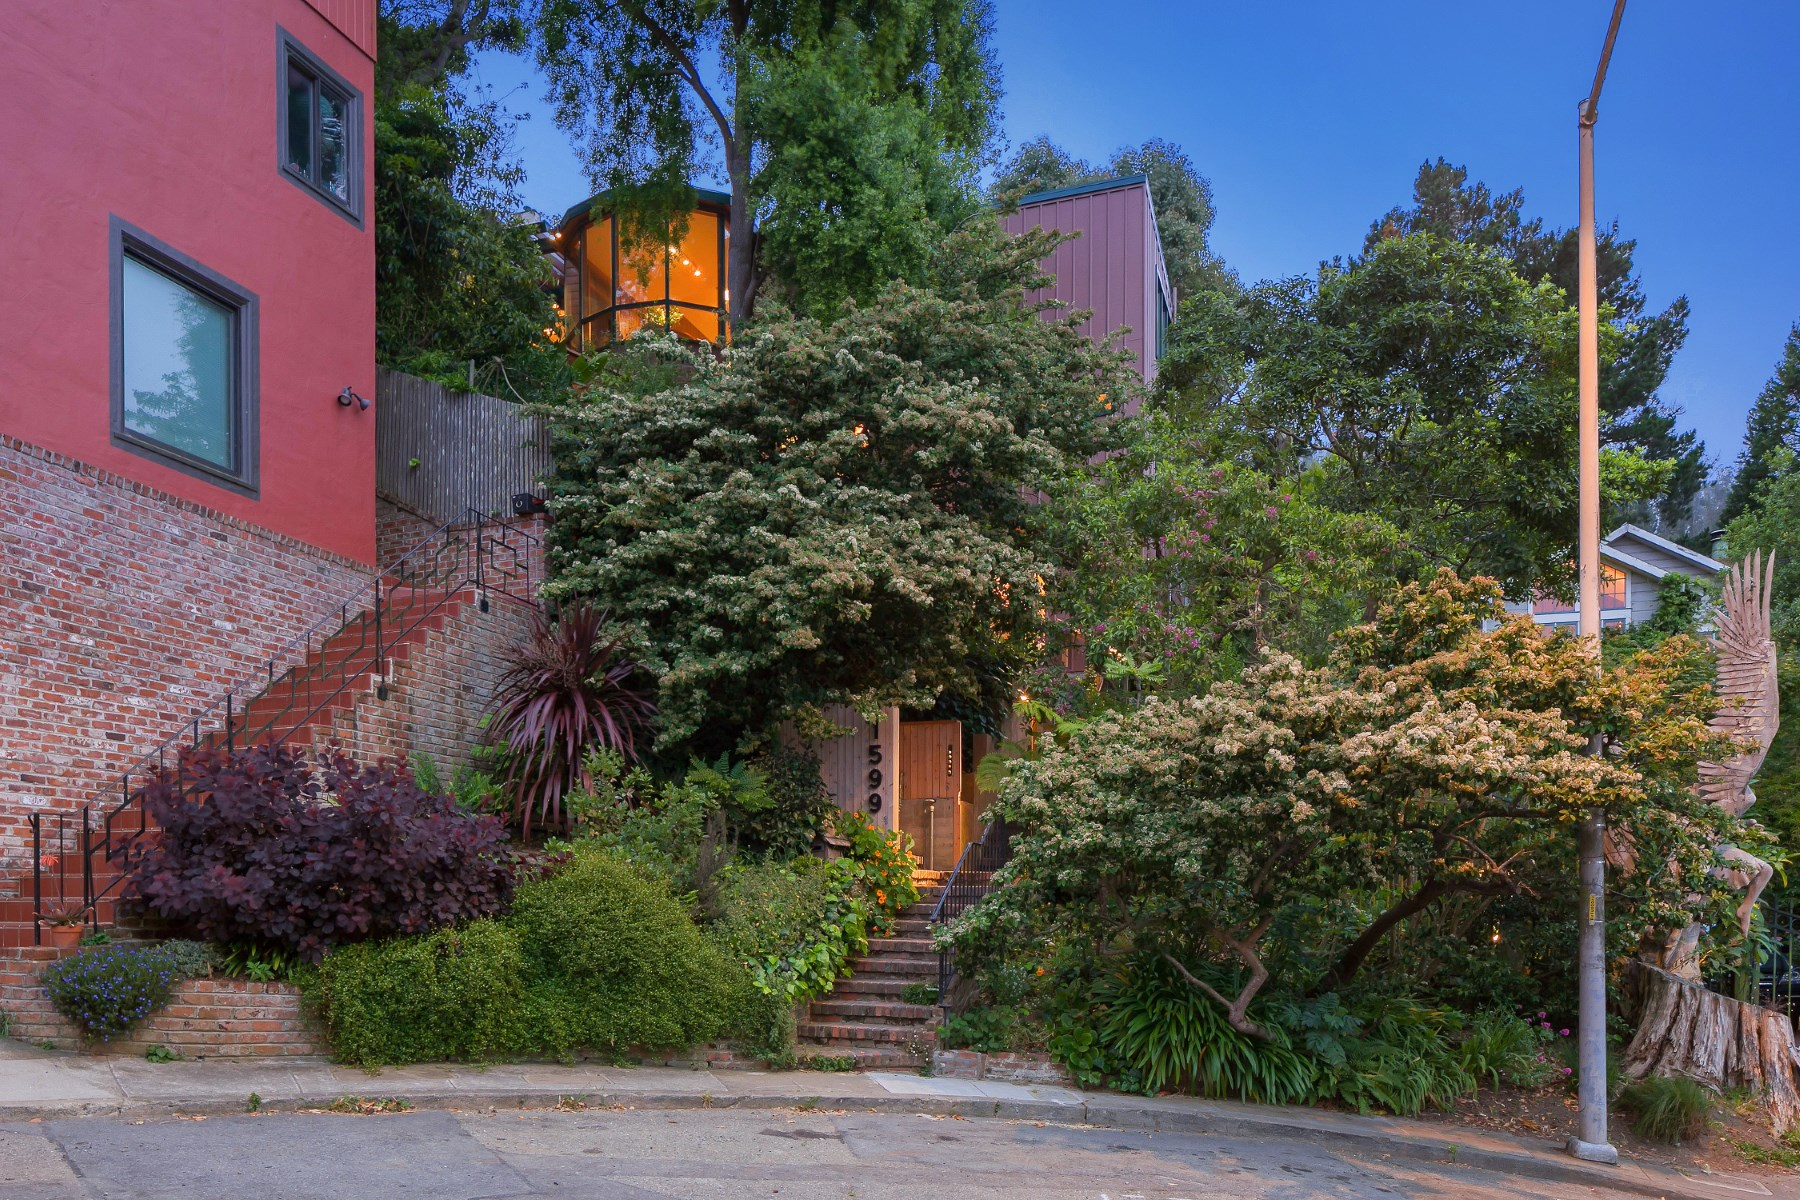 Single Family Home for Sale at Country Living in Cole Valley 1599 Shrader St Cole Valley, San Francisco, California, 94117 United States